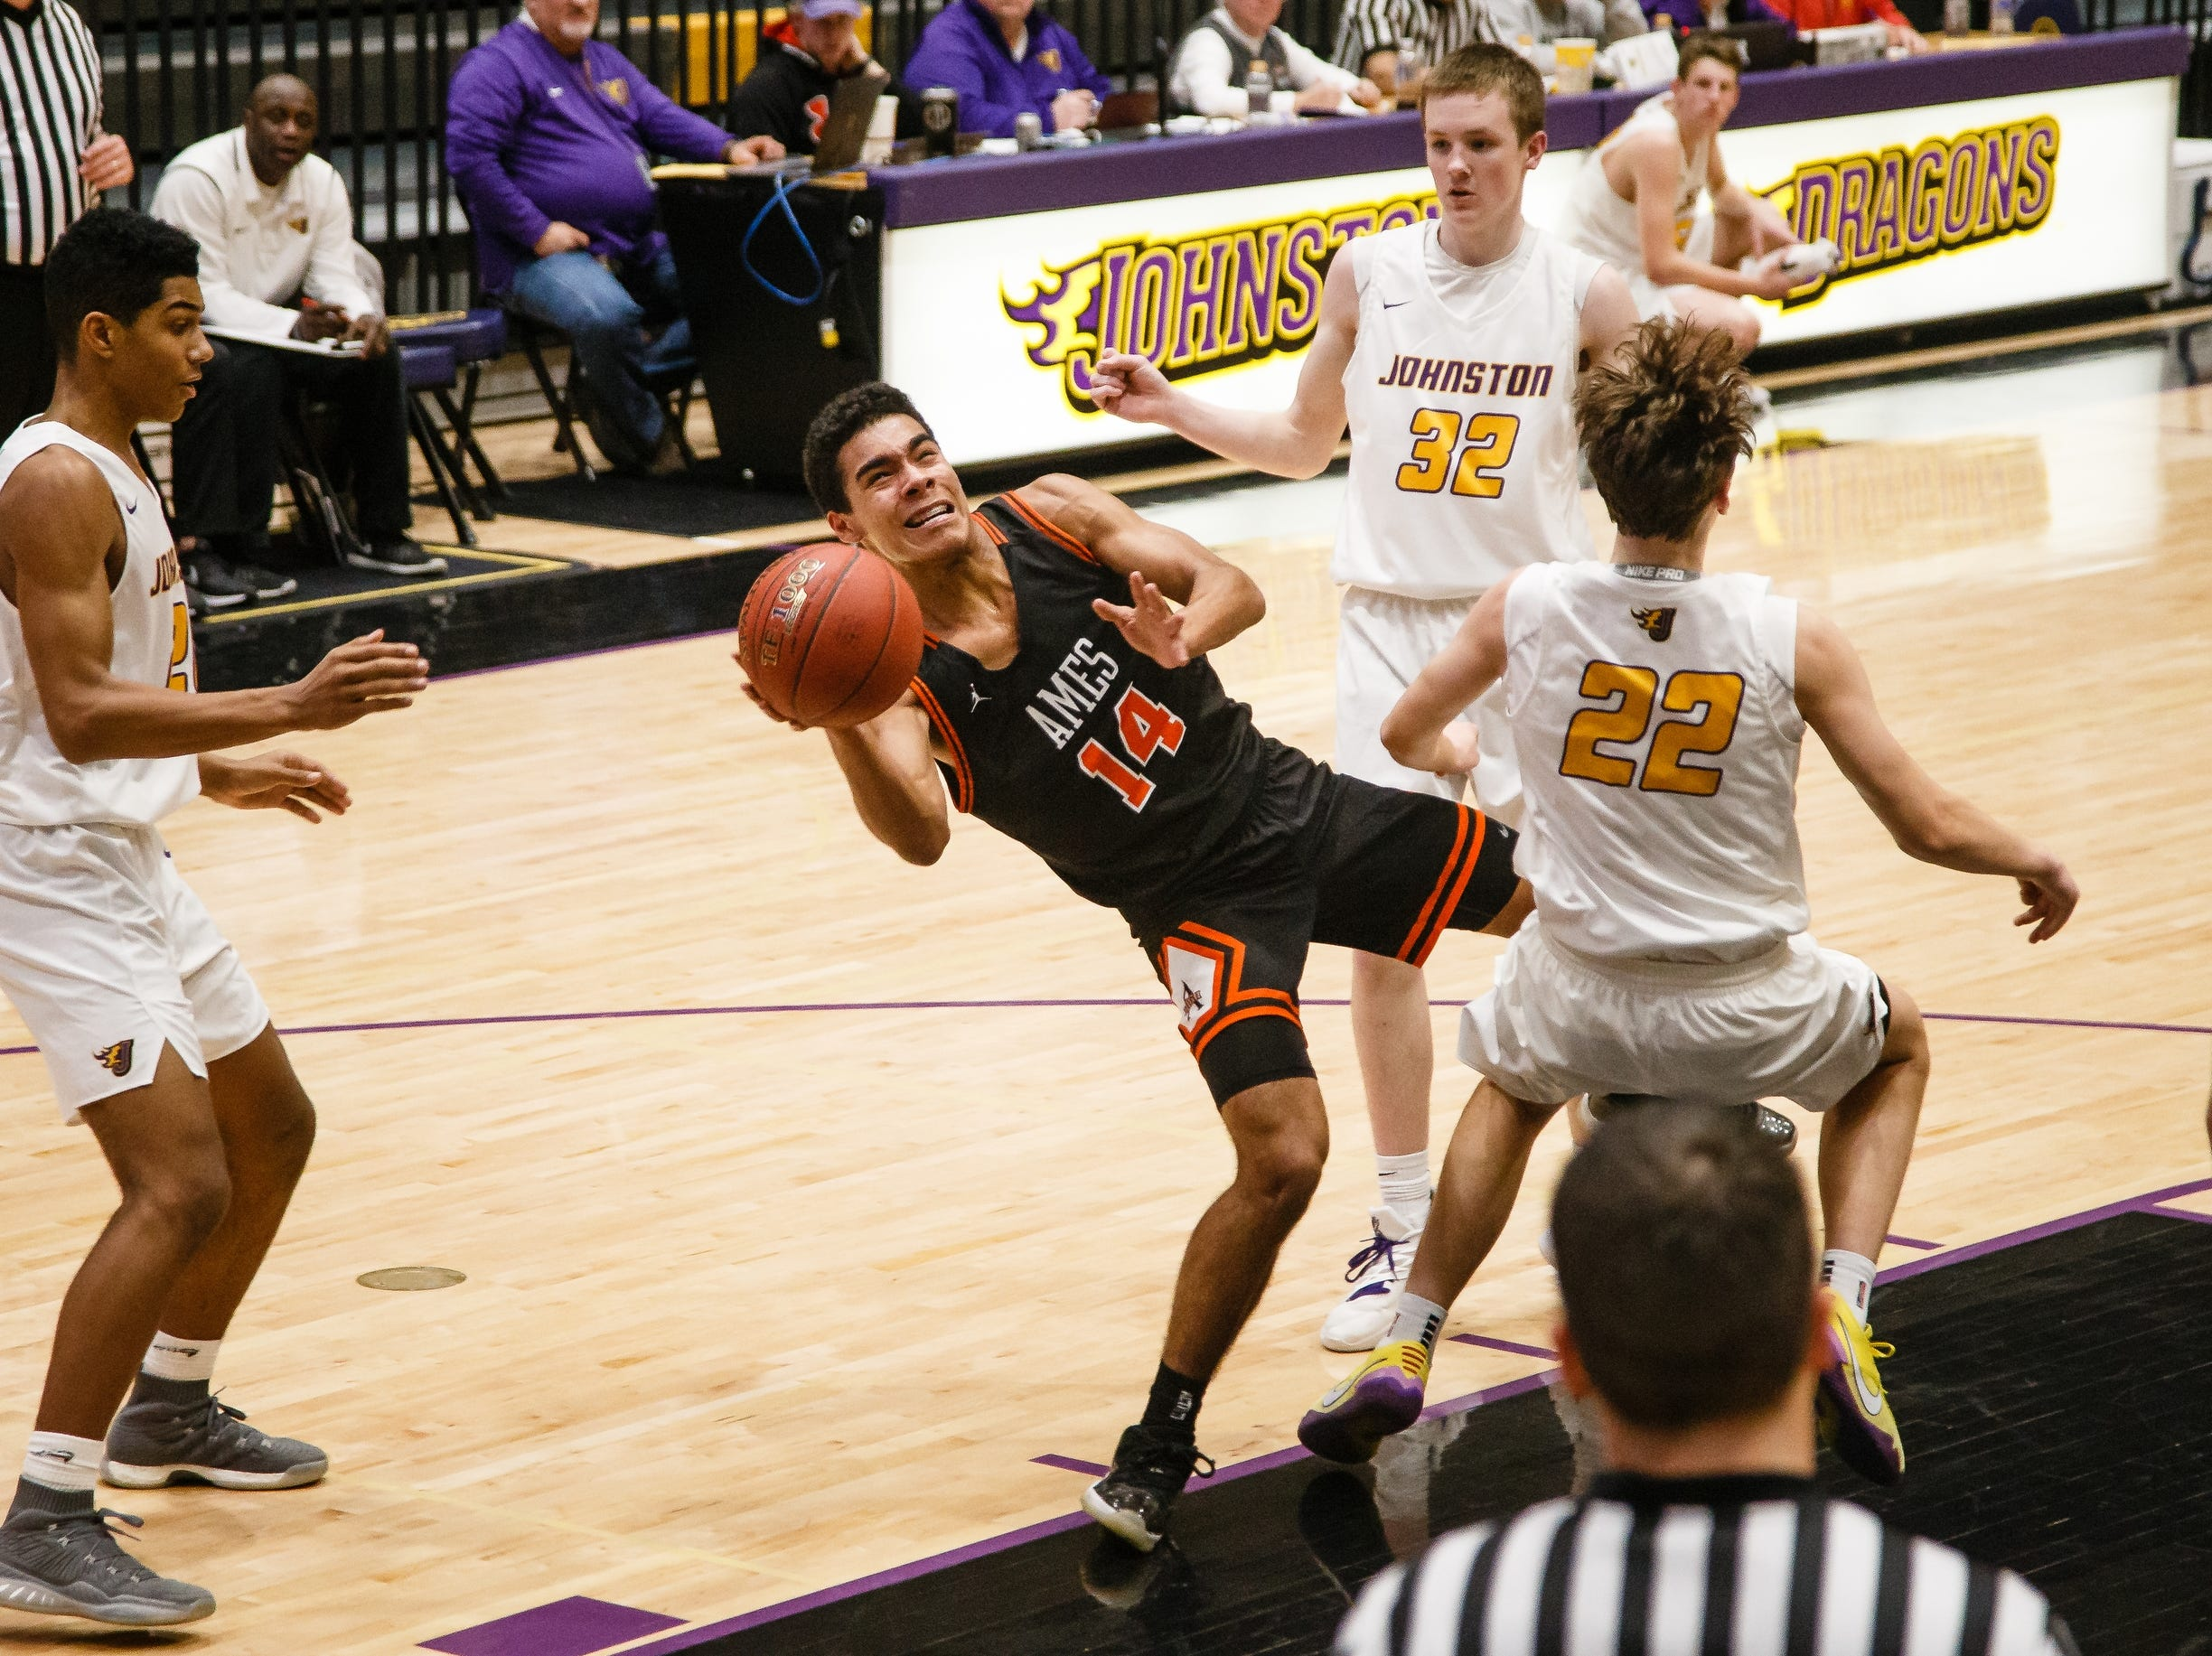 Ames freshman Tamin Lipsey is fouled while shooting during Ames' basketball game against Johnston on Friday, Jan. 11, 2019, in Johnston.